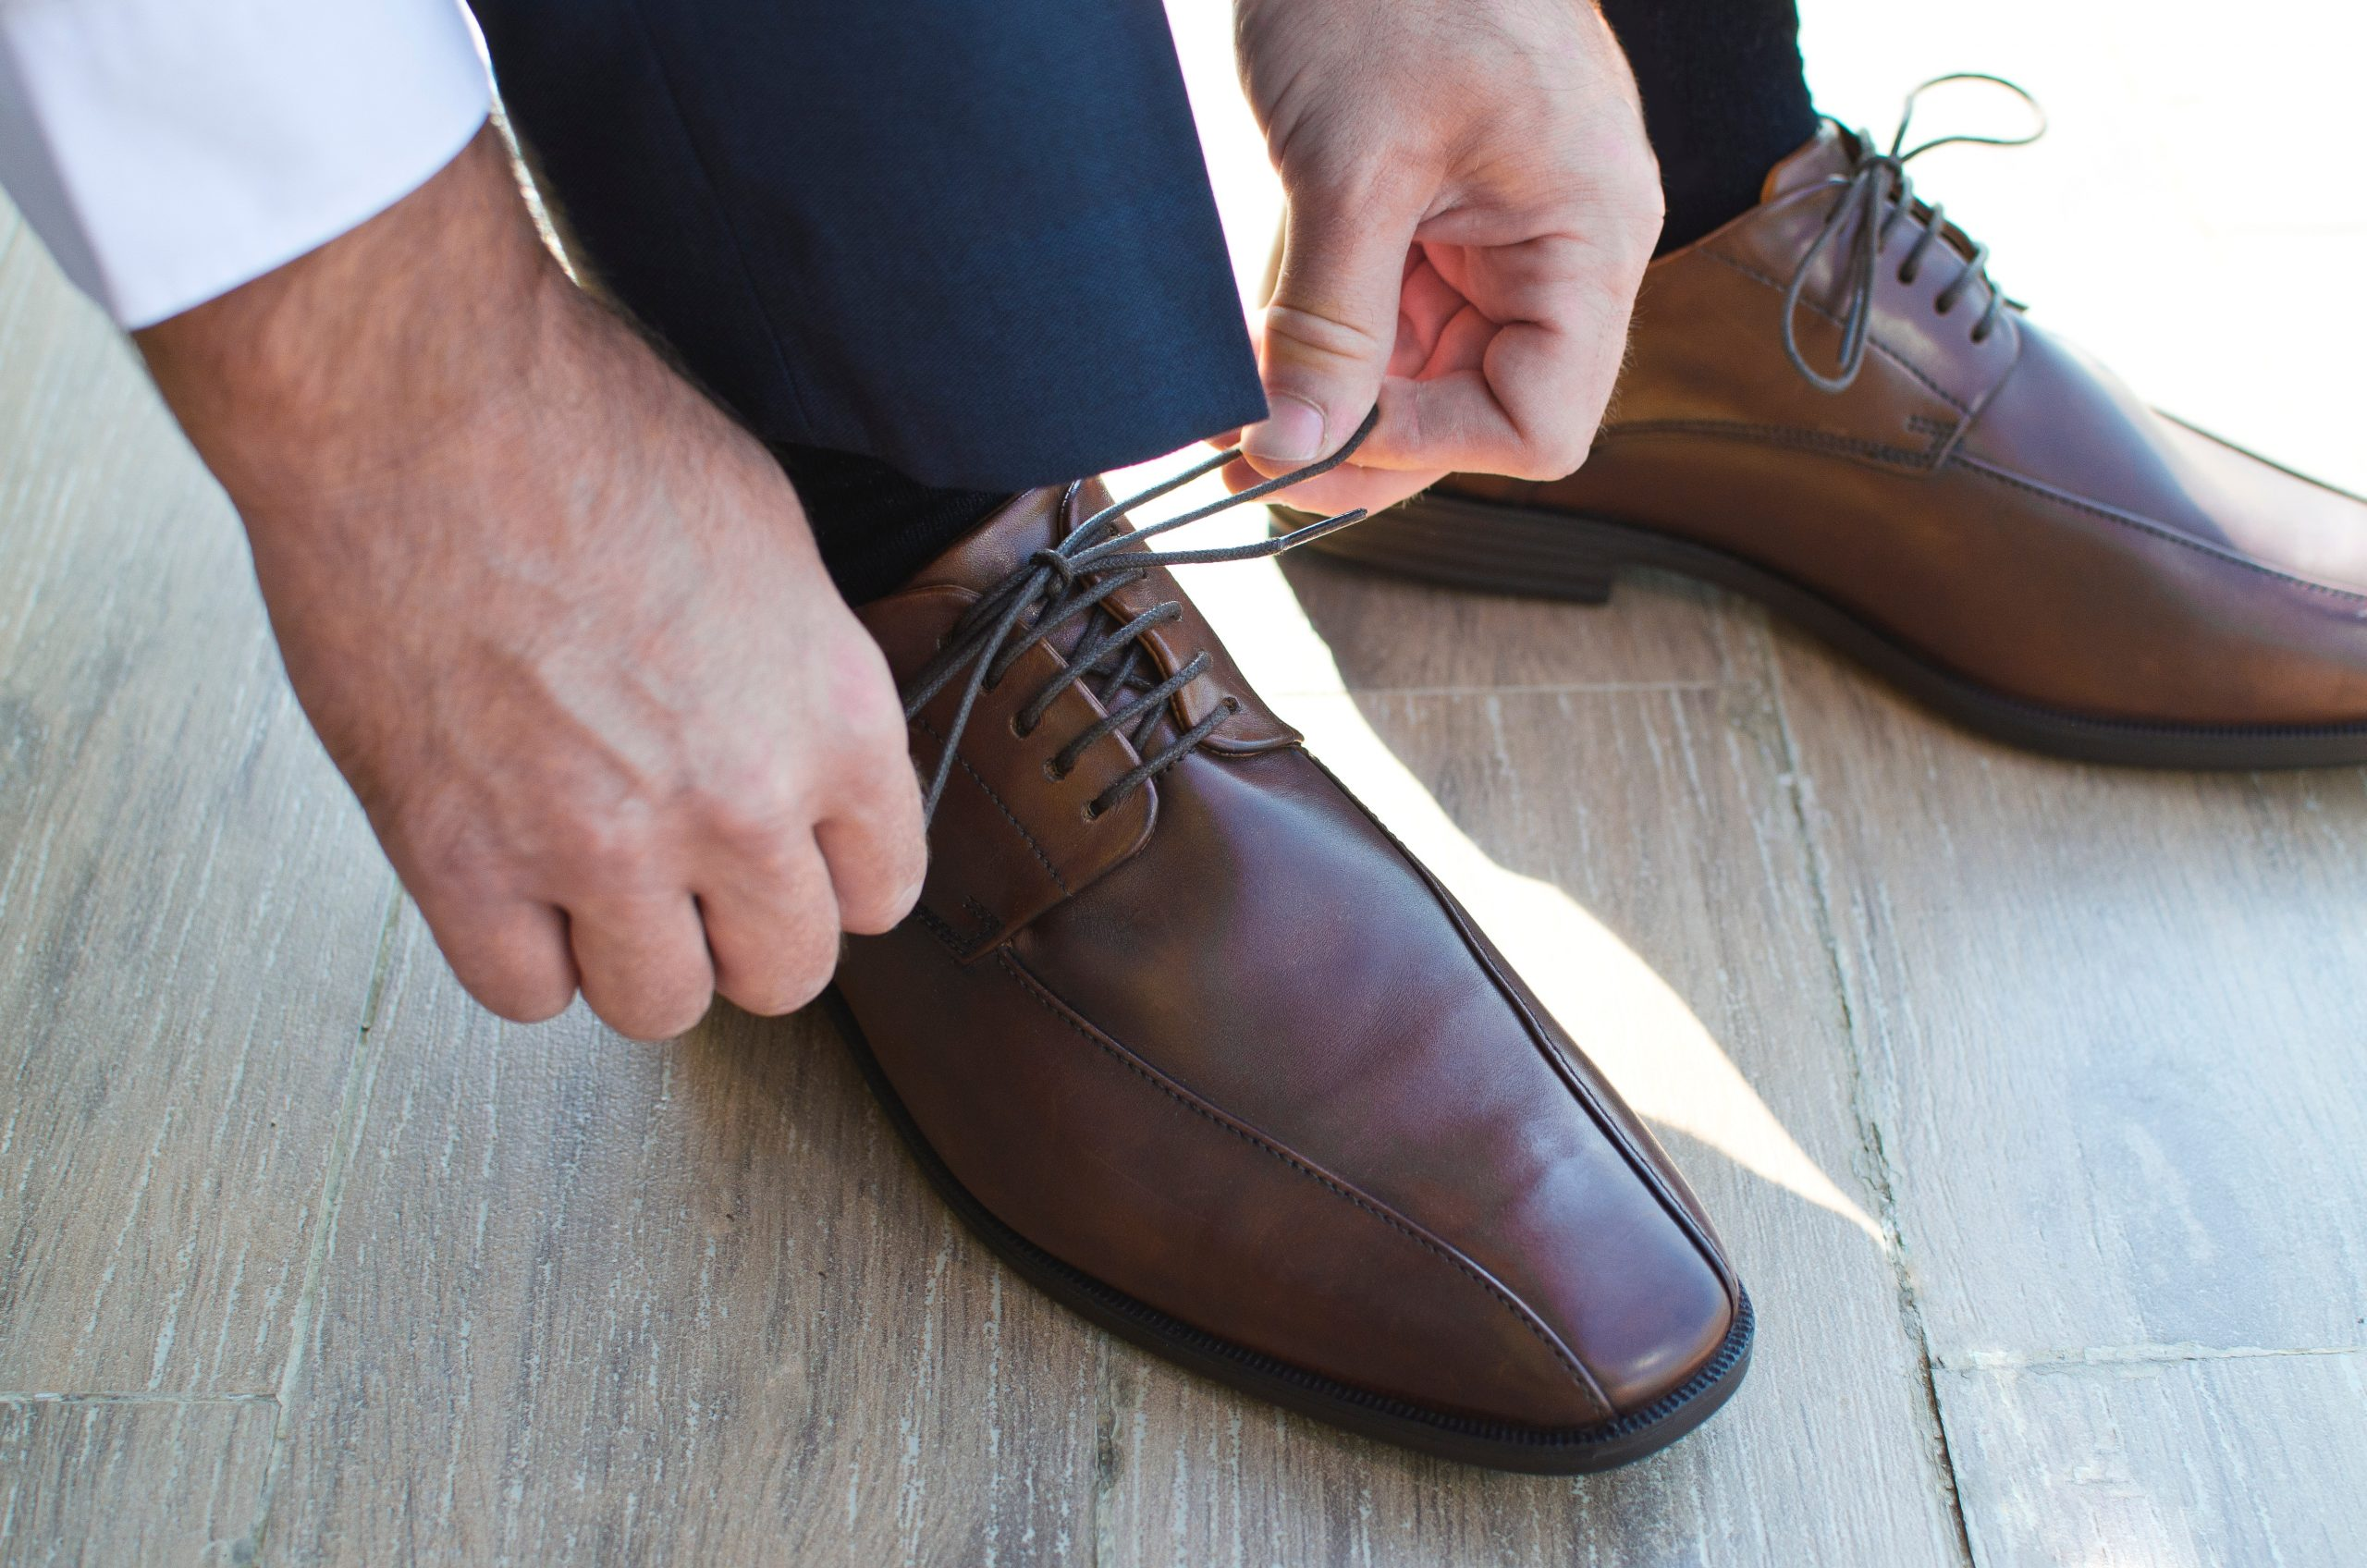 focus shot of a man tying the shoelaces of his brown leather dress shoes